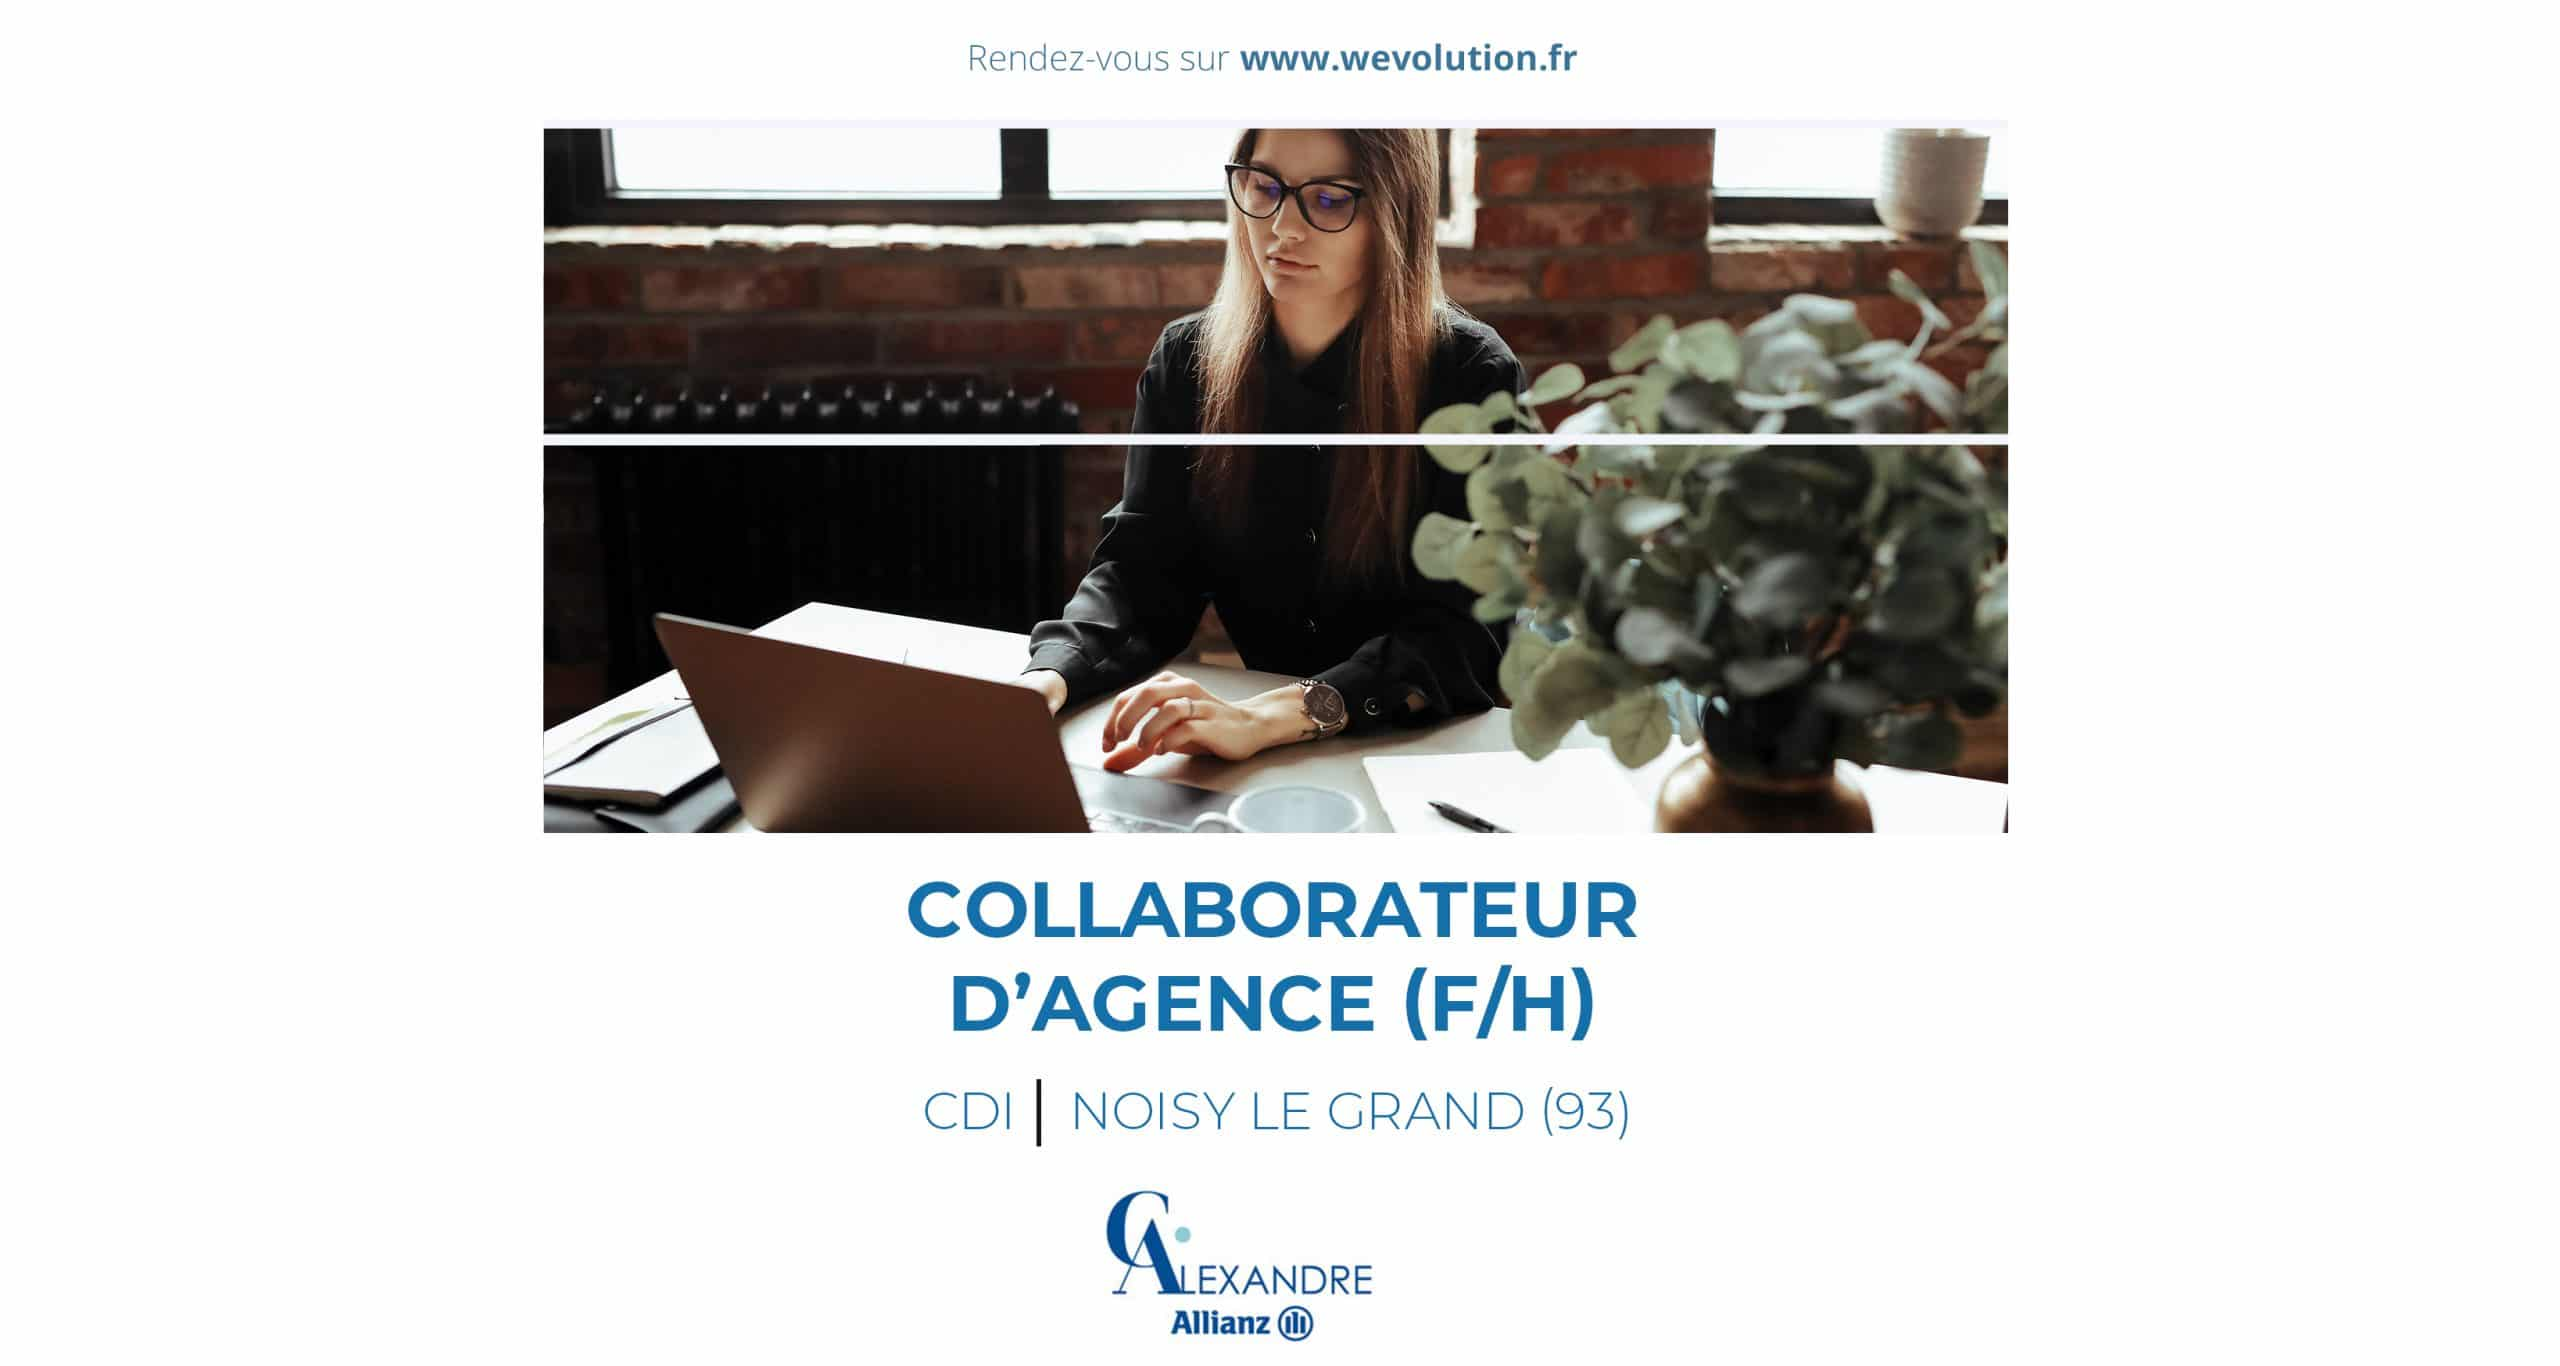 COLLABORATEUR D'AGENCE – ALLIANZ CHRISTINE ALEXANDRE